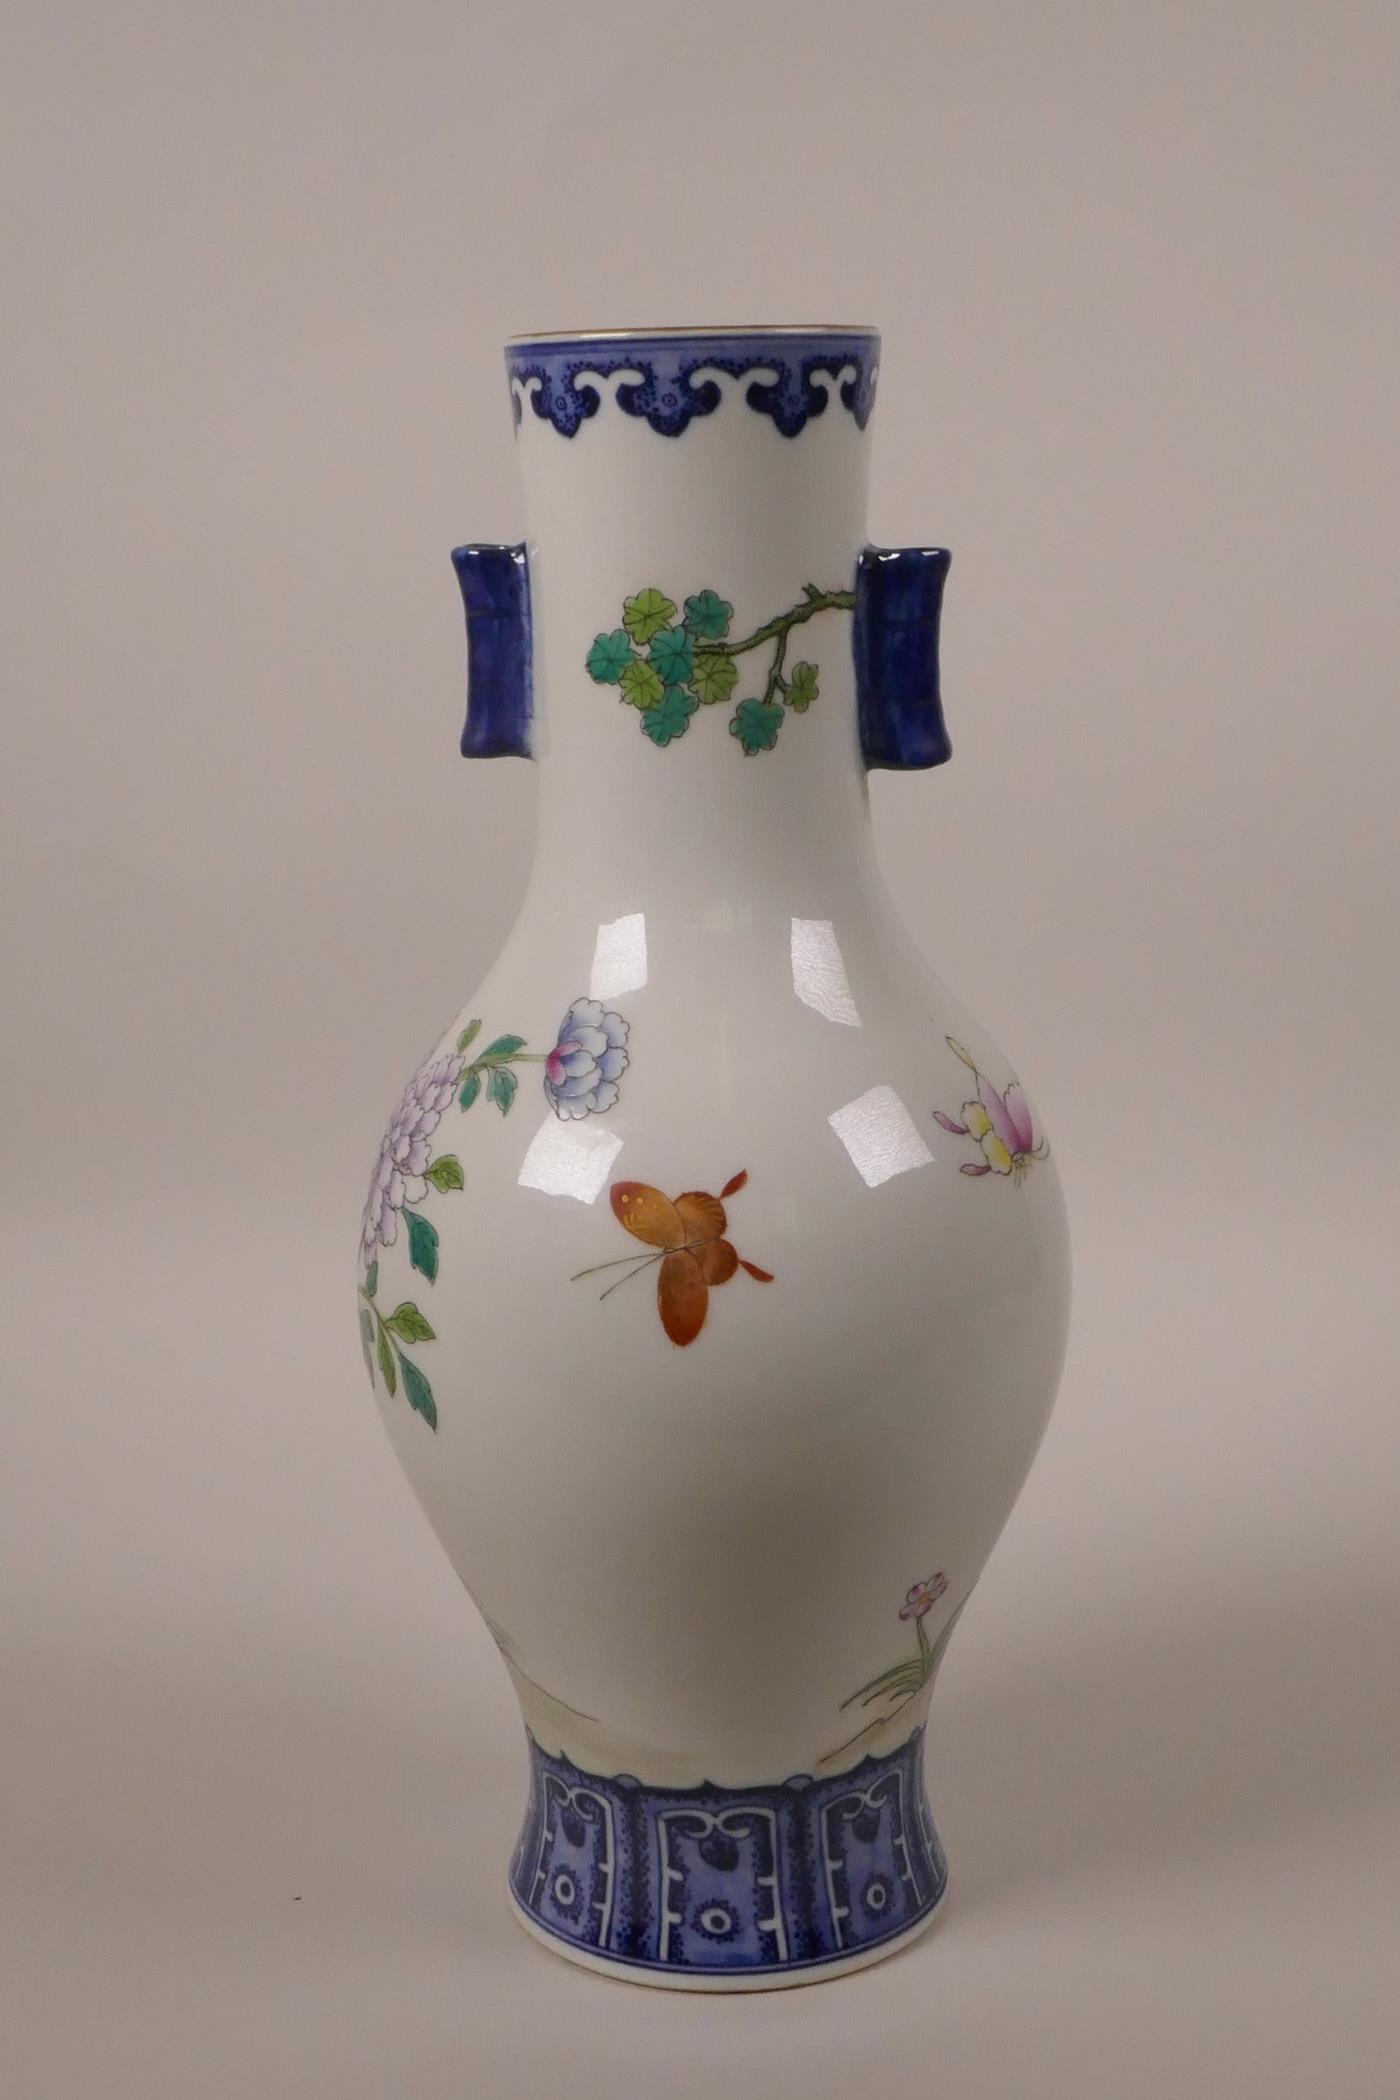 Lot 33 - A Chinese polychrome porcelain vase with two lug handles, decorated with Asiatic birds and